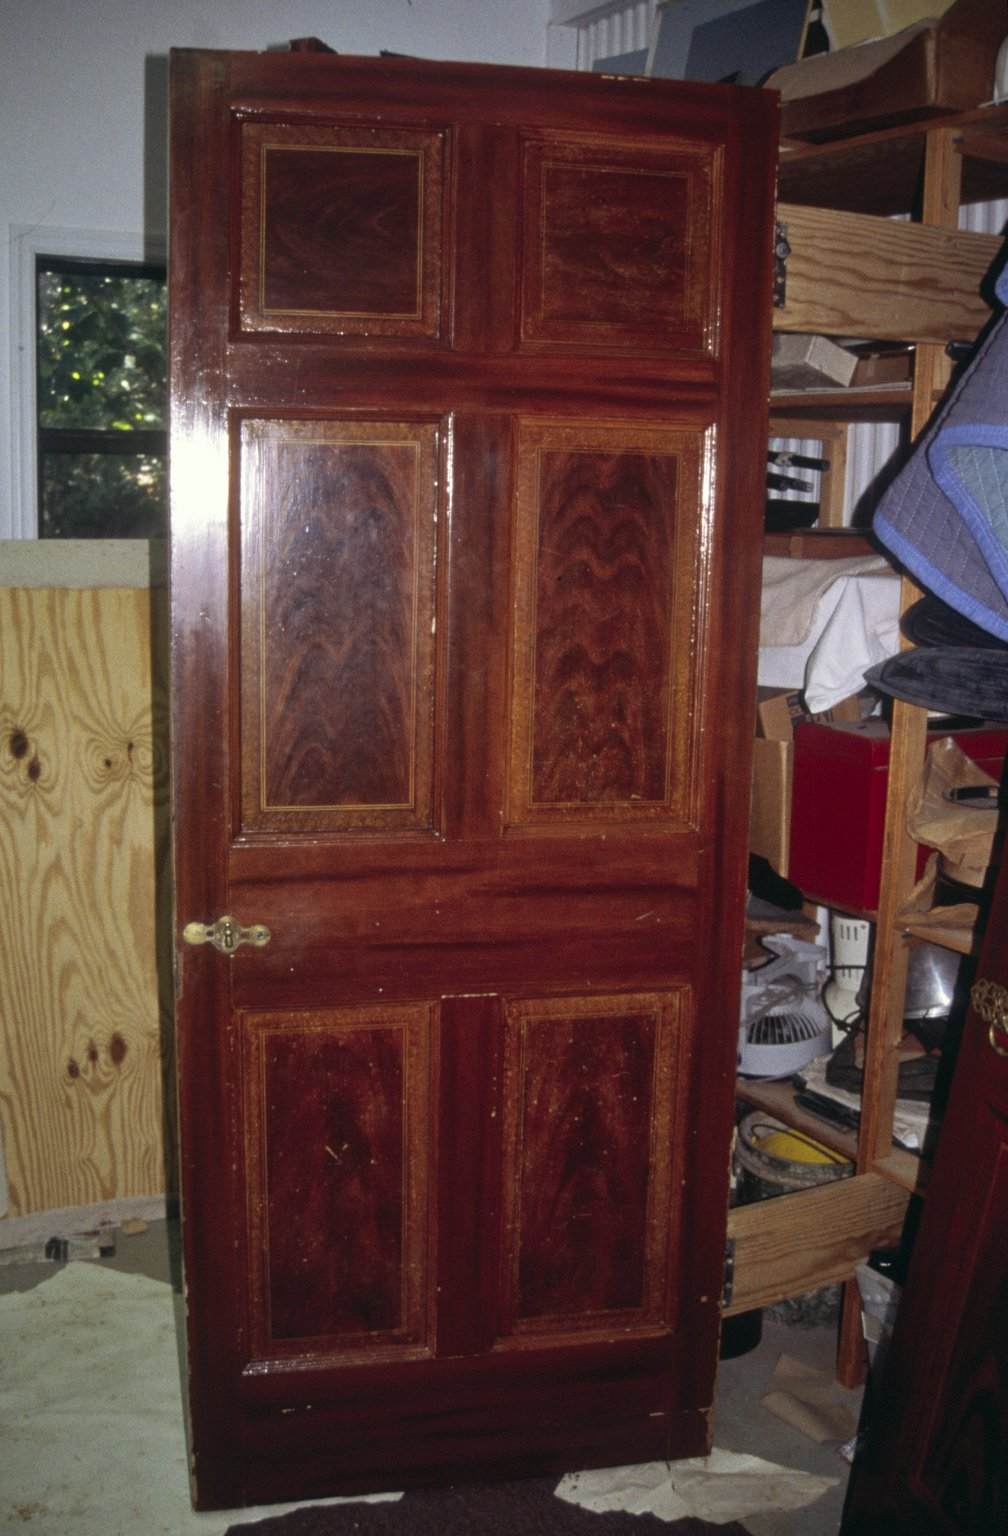 Monticello, restoration, Jefferson's Cabinet and Bedroom door, damage to conserved graining